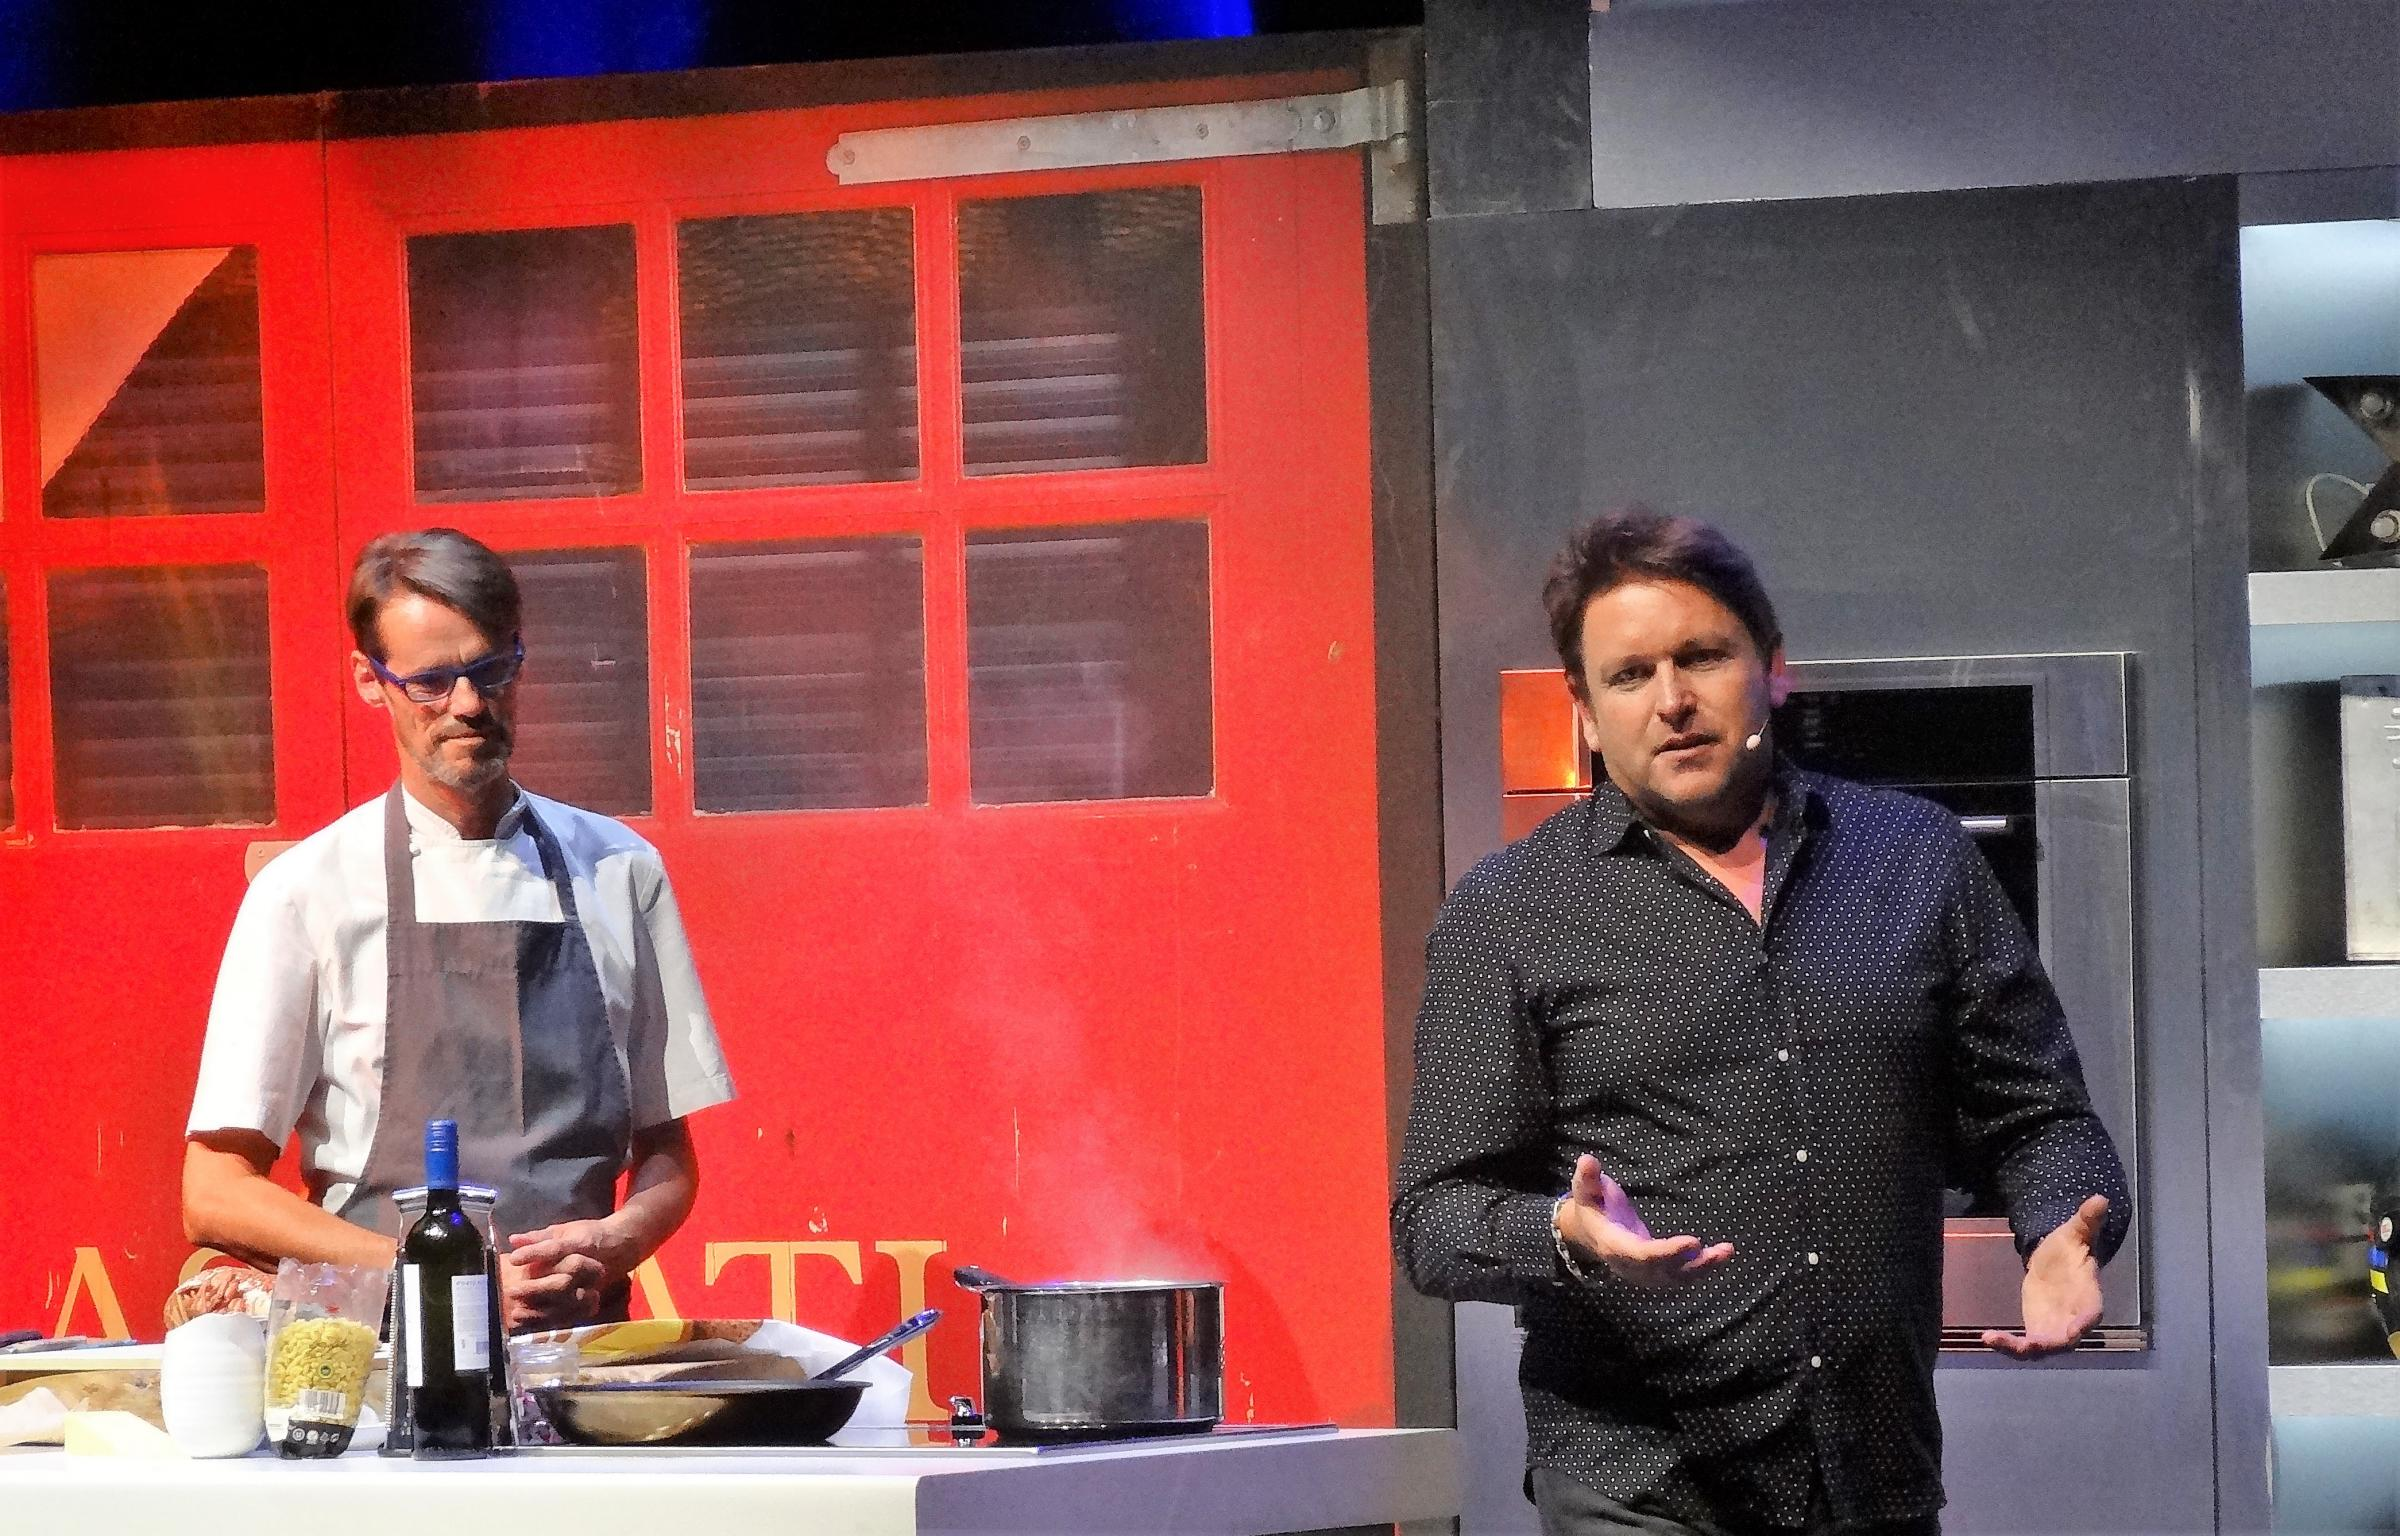 Home coming: Malton celebrity chef James Martin, right, with his deadpan sous-chef Chris Start. Picture: Paul Rhodes